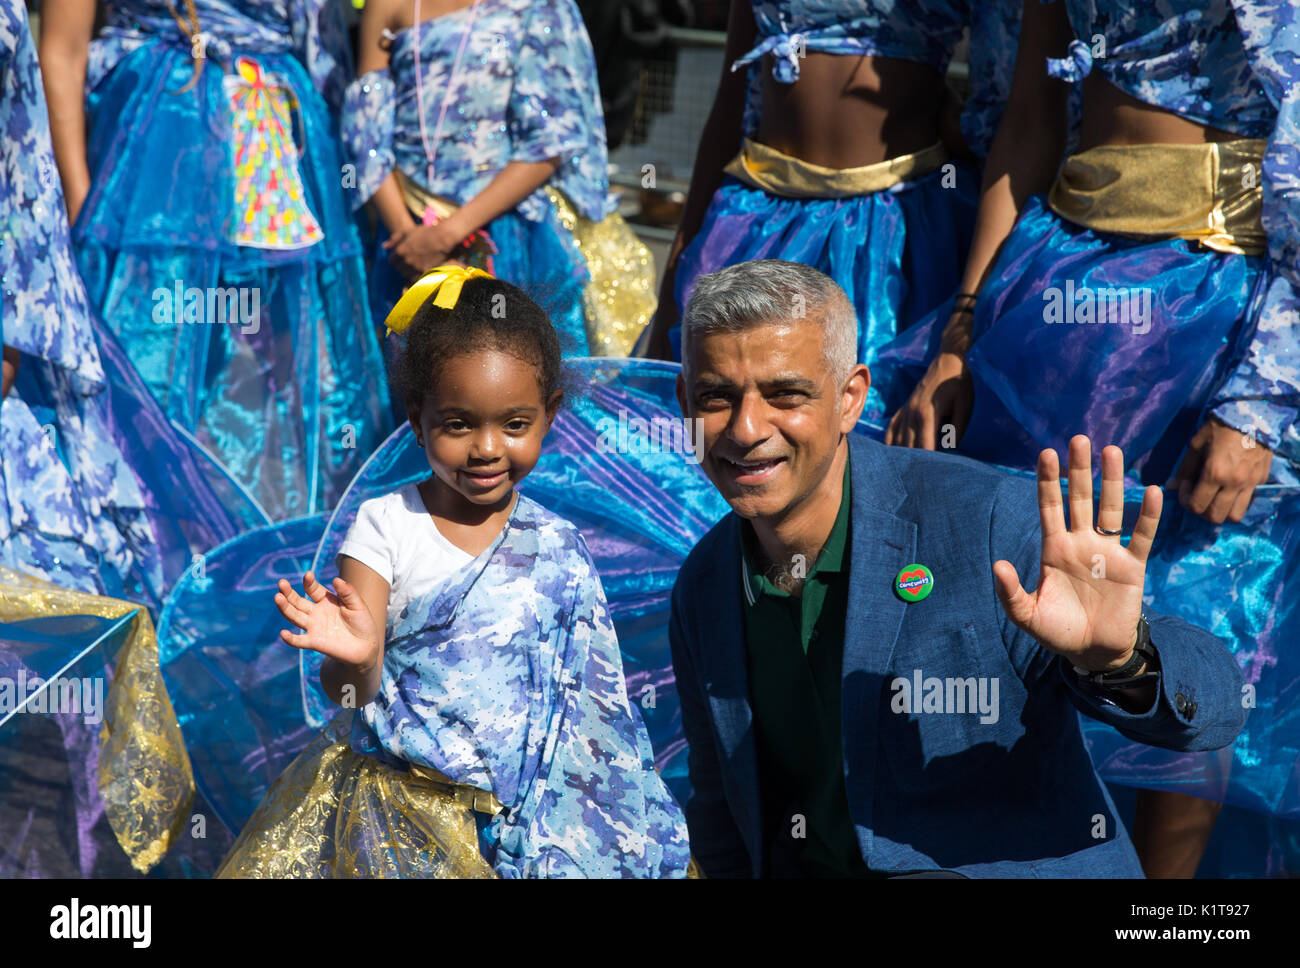 Mayor of London, Sadiq Khan, at the Notting Hill carnival 2017.He made a speech as well as releasing a dove in memory of the victims of Grenfell fire - Stock Image